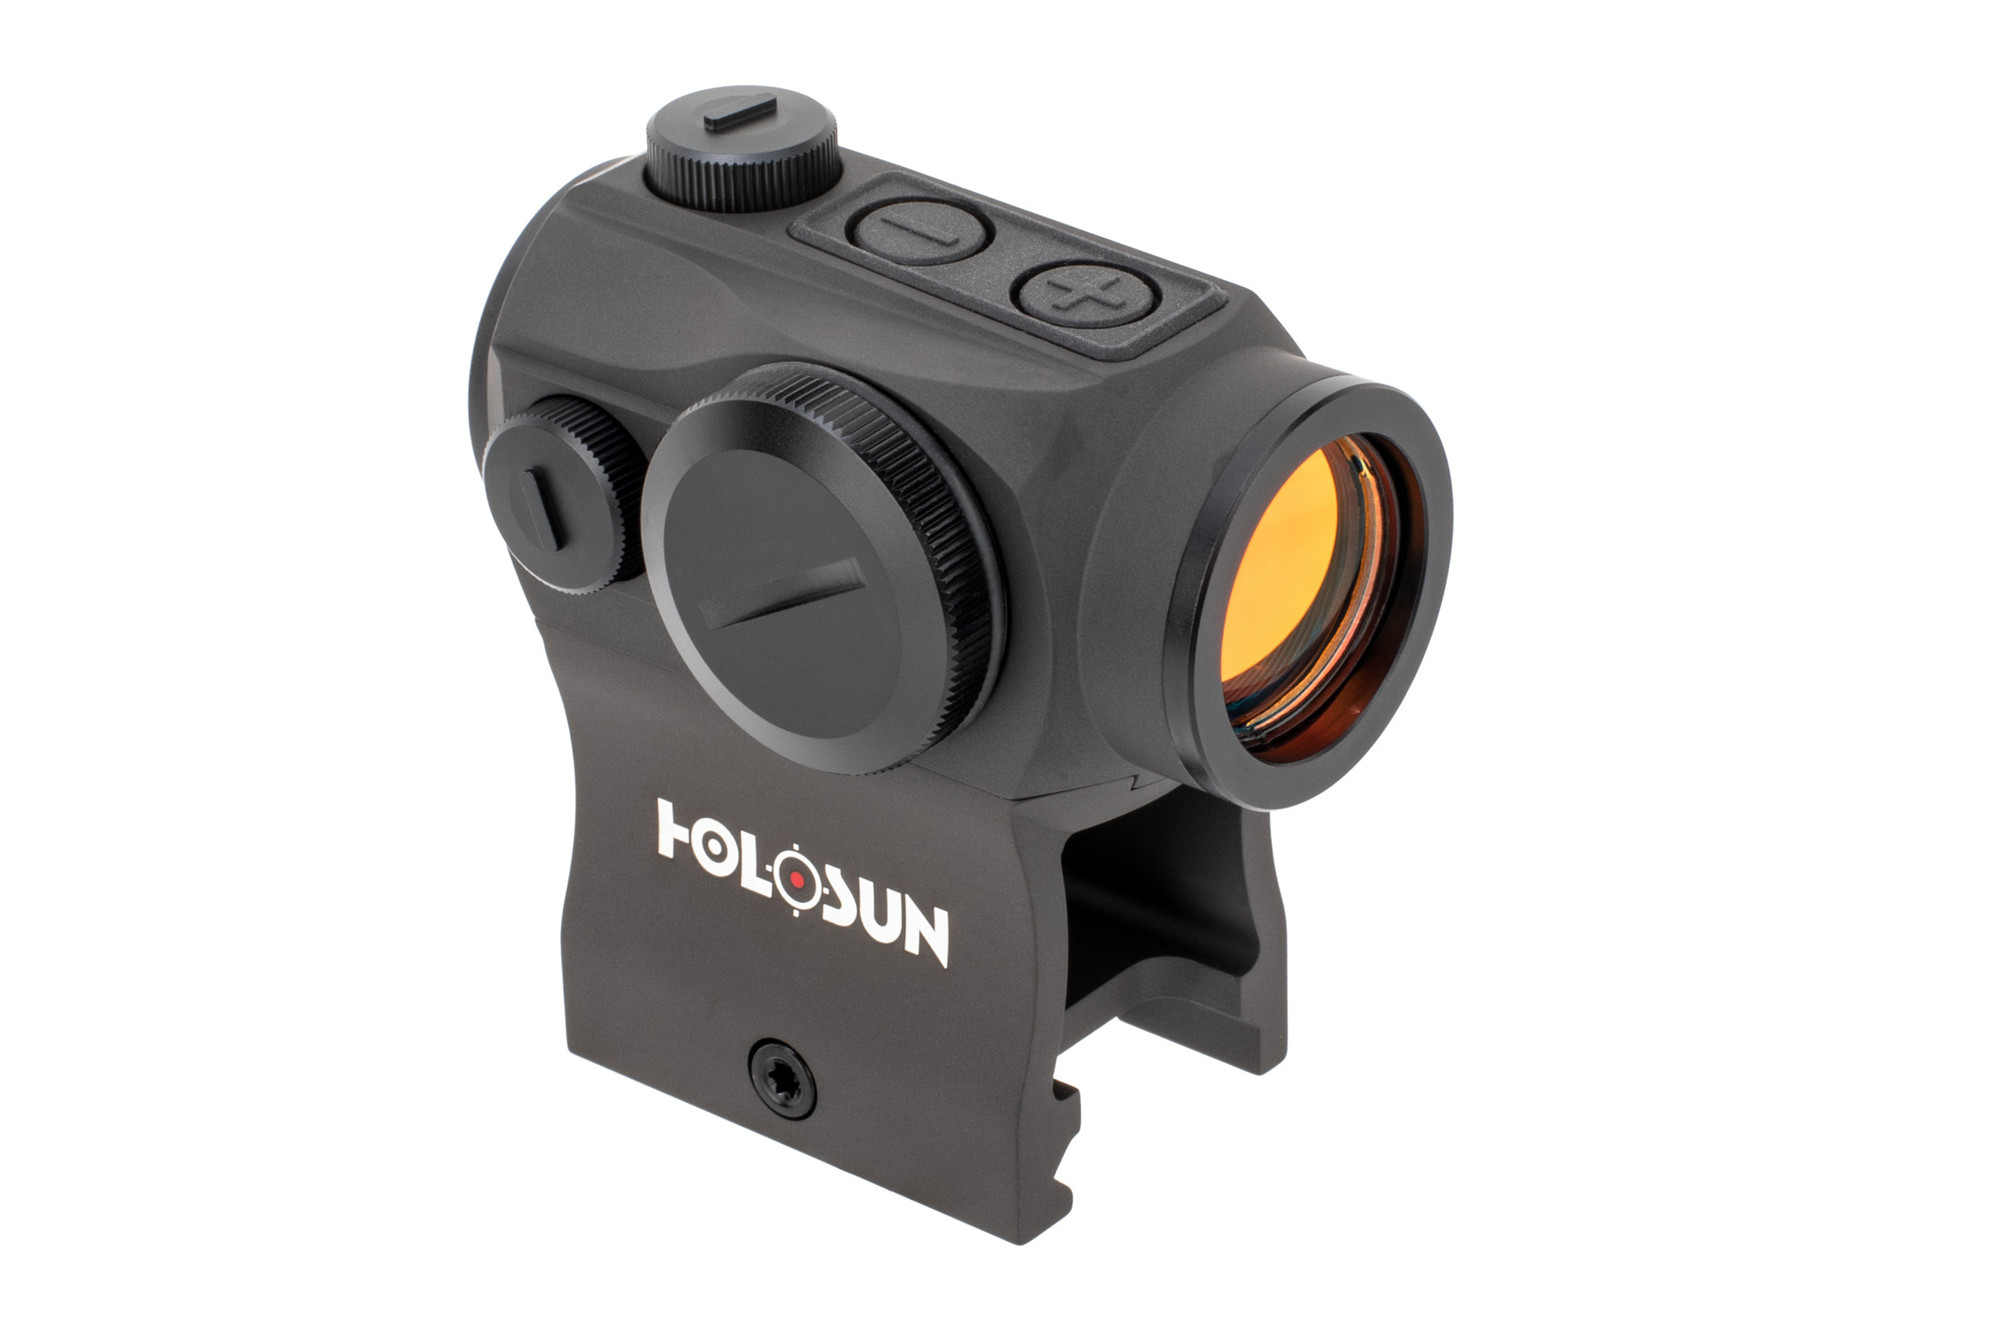 holosun red dot sight Ruger PC Carbine accessory